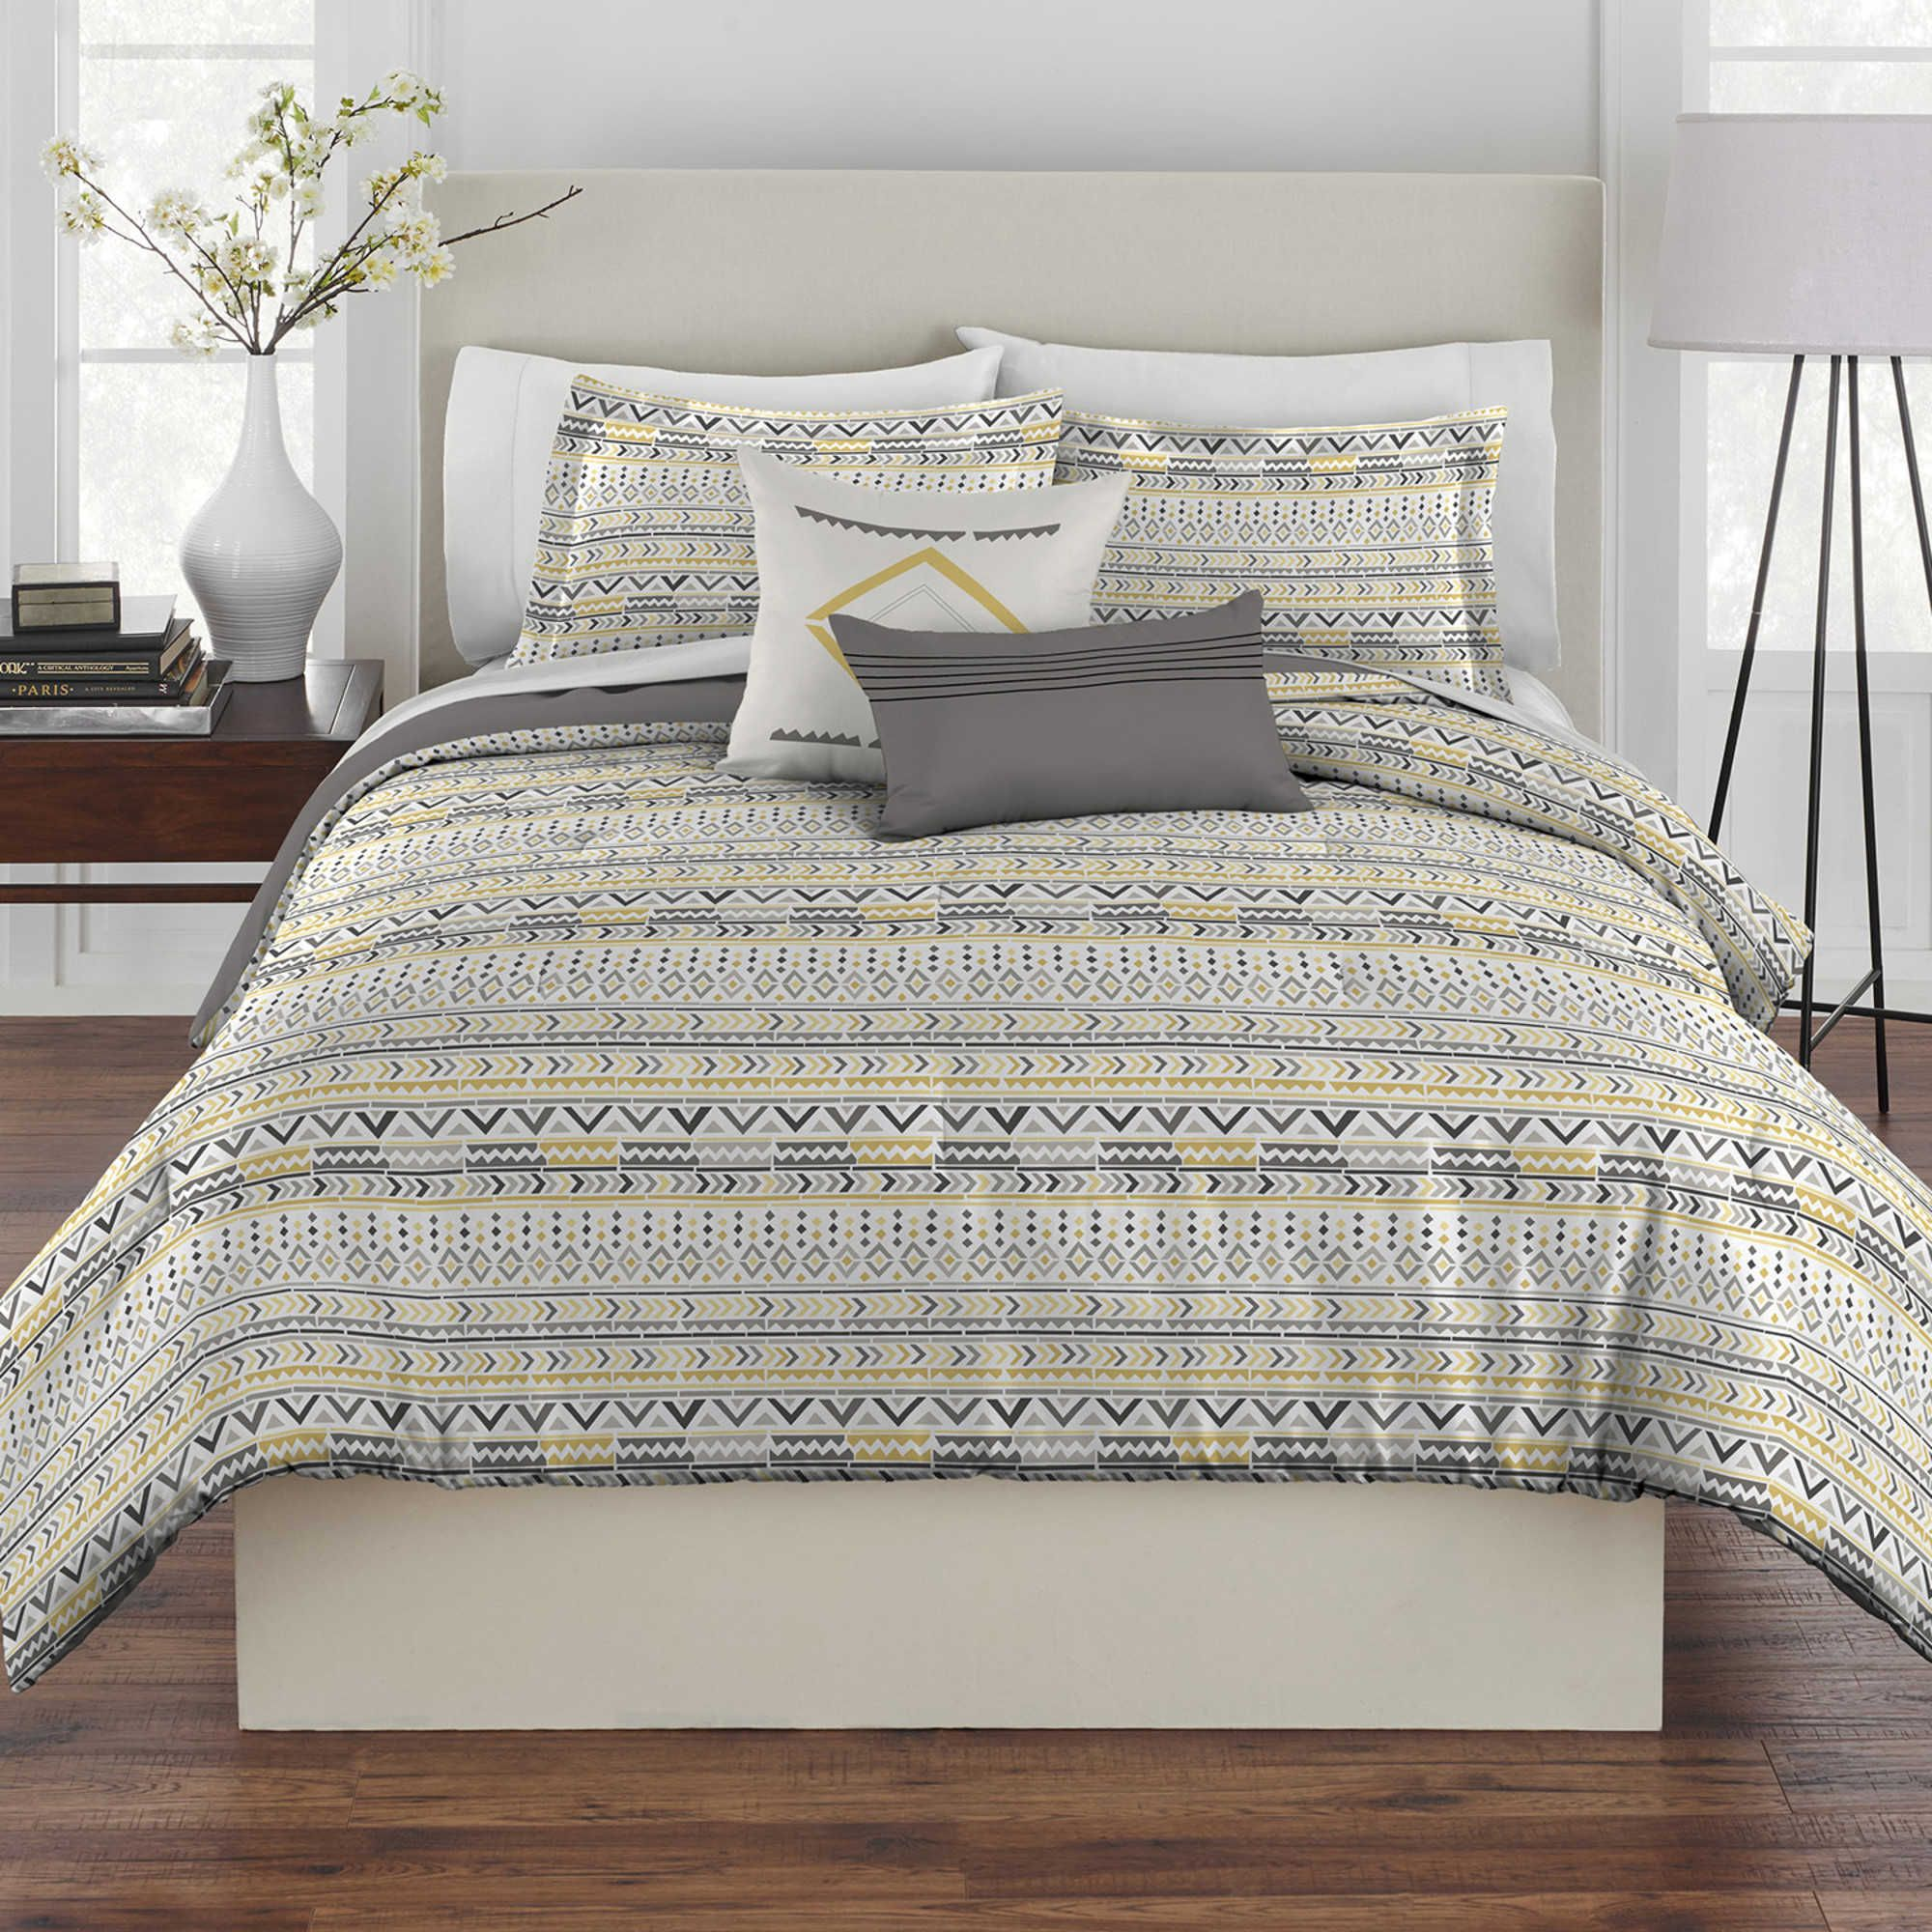 Rhapsody Geo Tribal 5 Piece Reversible Full Queen forter Set in